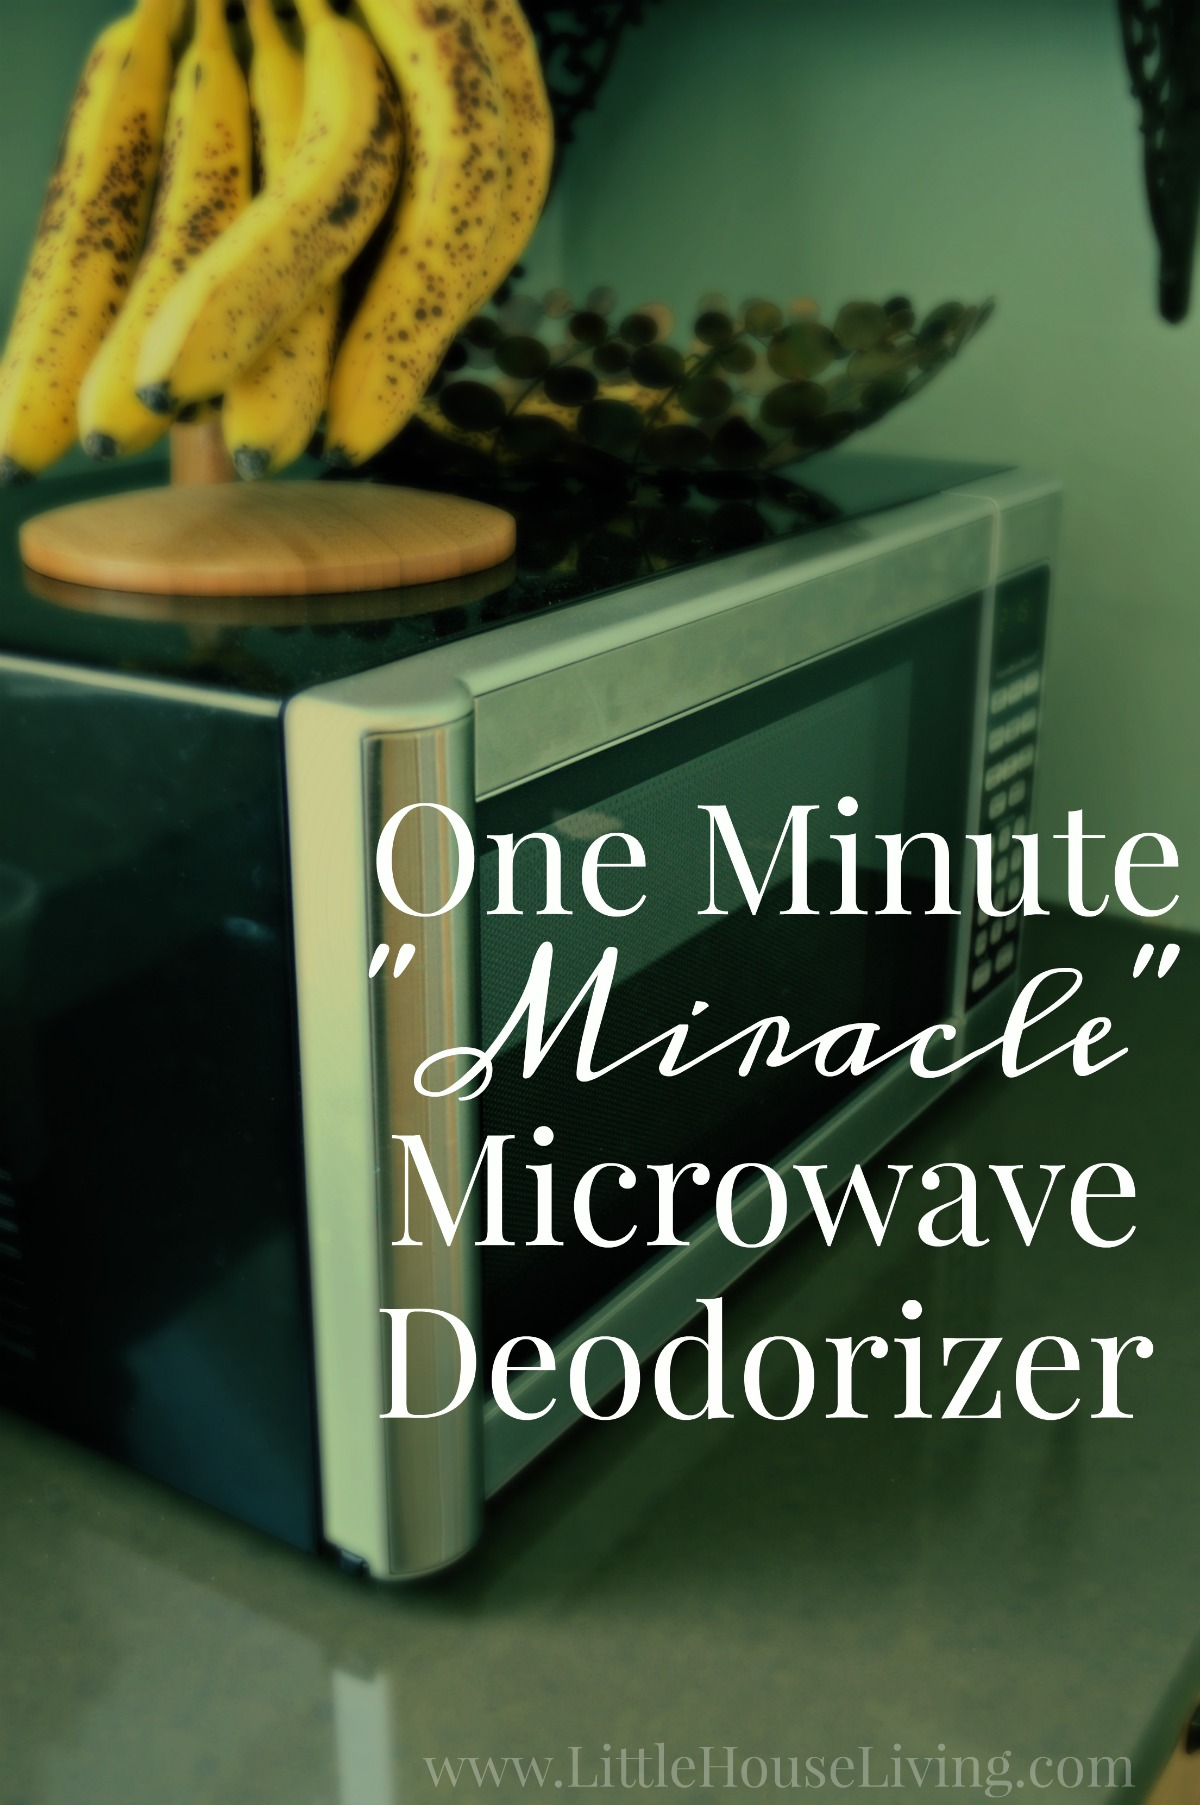 One Minute Miracle Microwave Deodorizer